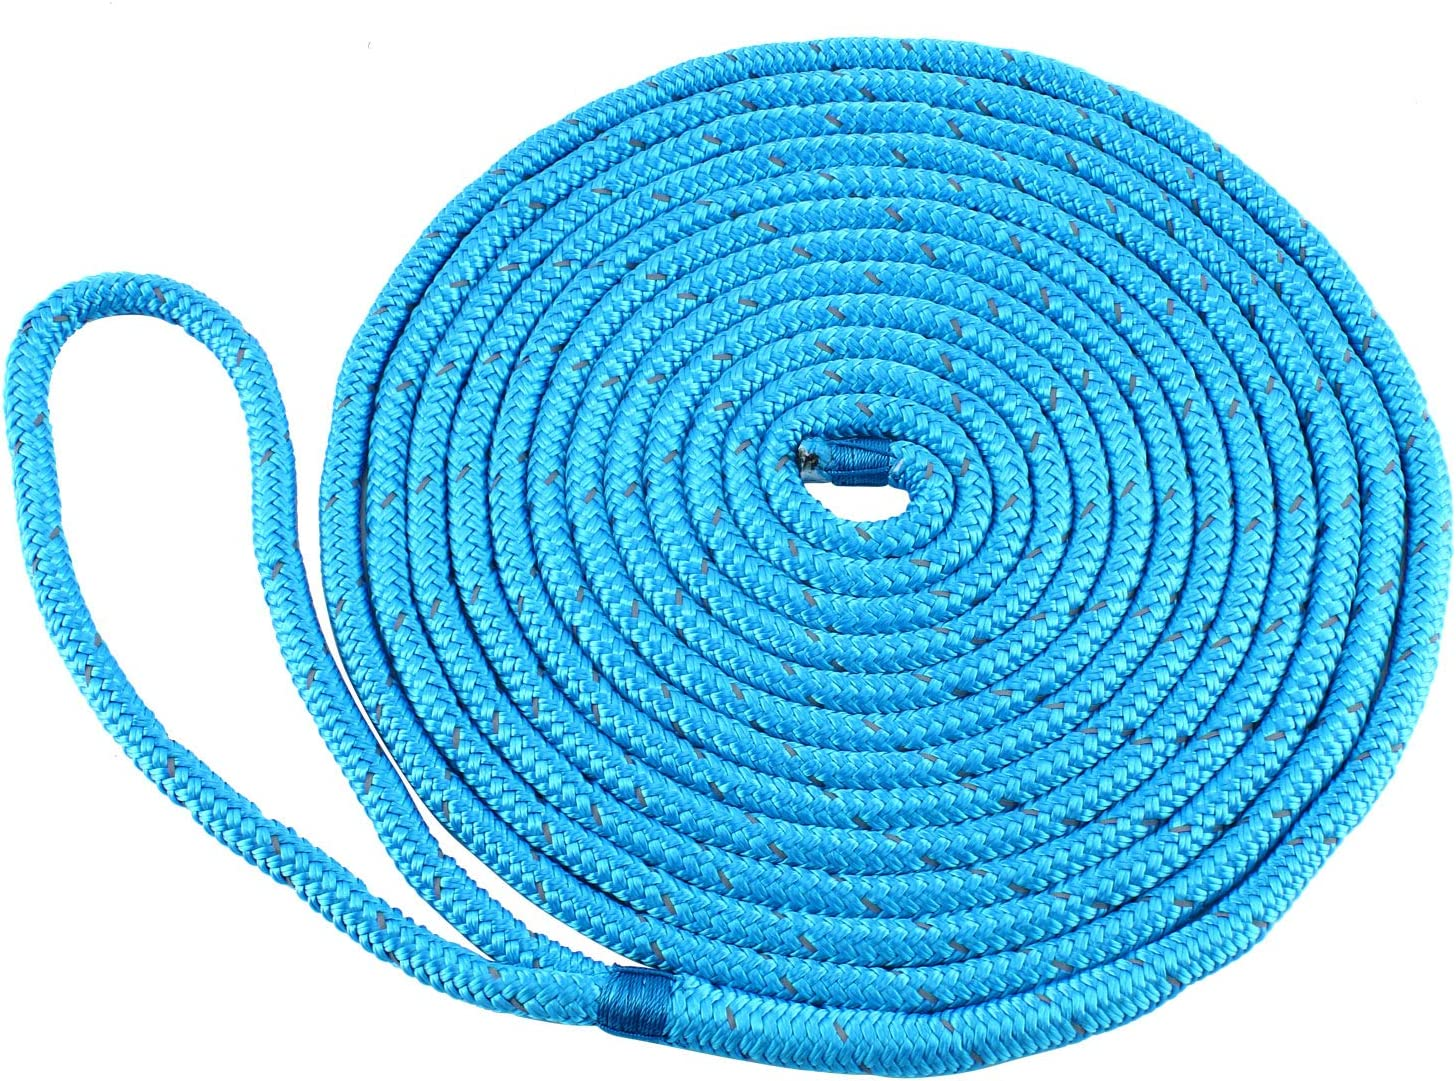 Amarine Made Reflective Double Braided Lines Dock lbs 70% Free shipping / New OFF Outlet Nylon 3300